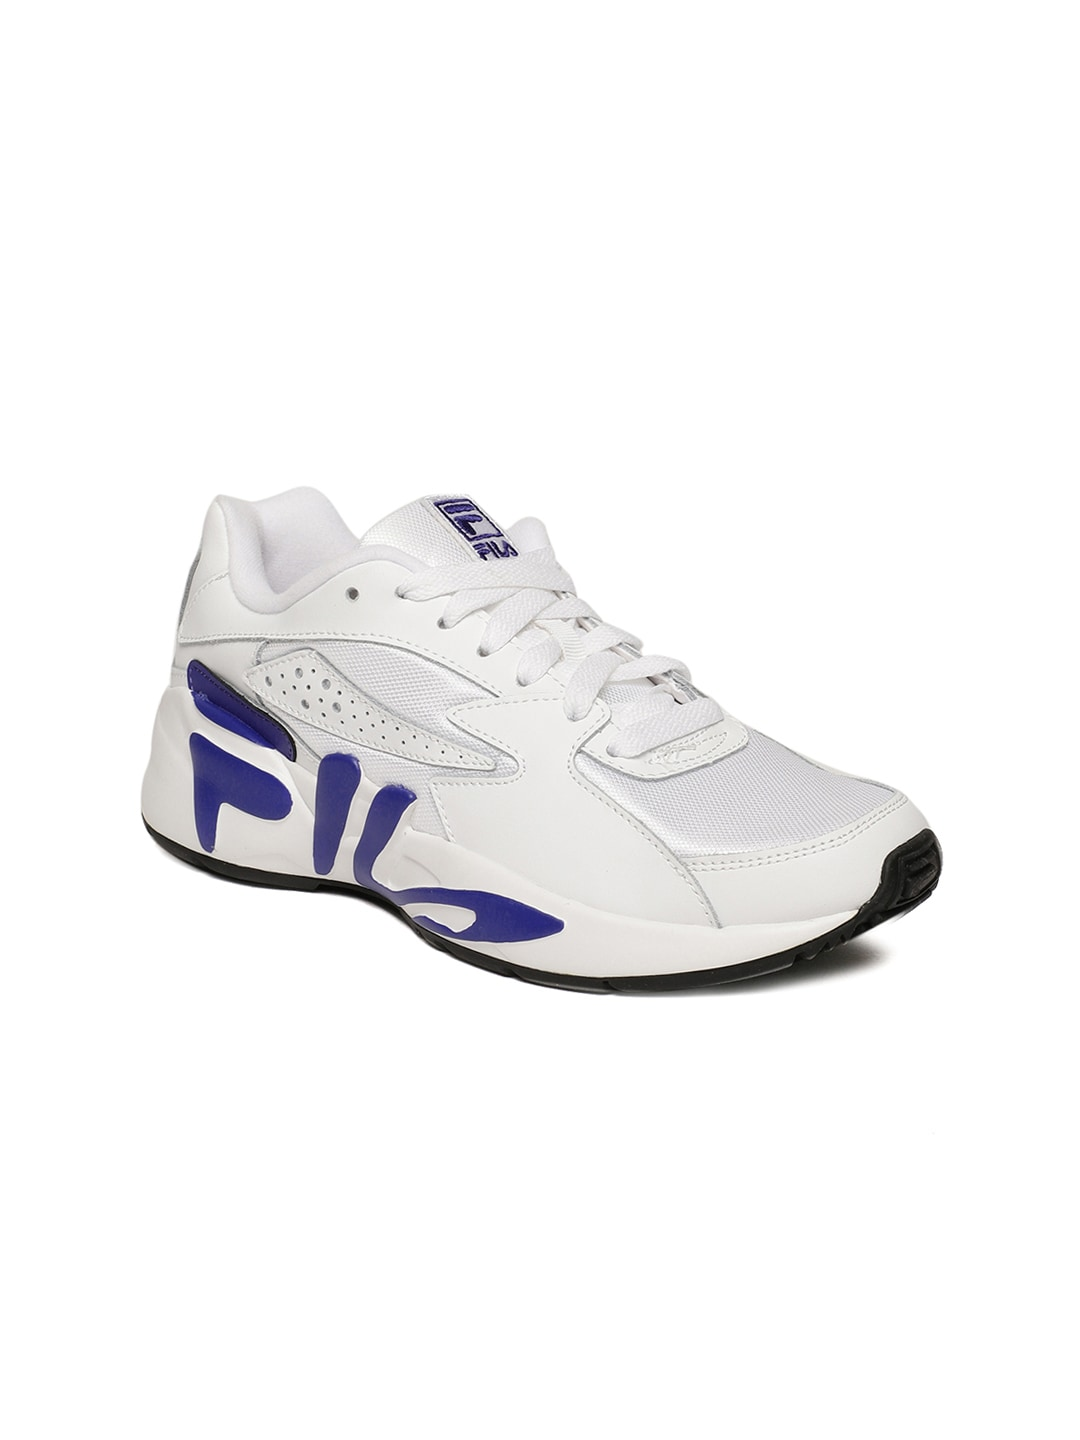 Fila - Exclusive Fila Online Store in India at Myntra b412e3021